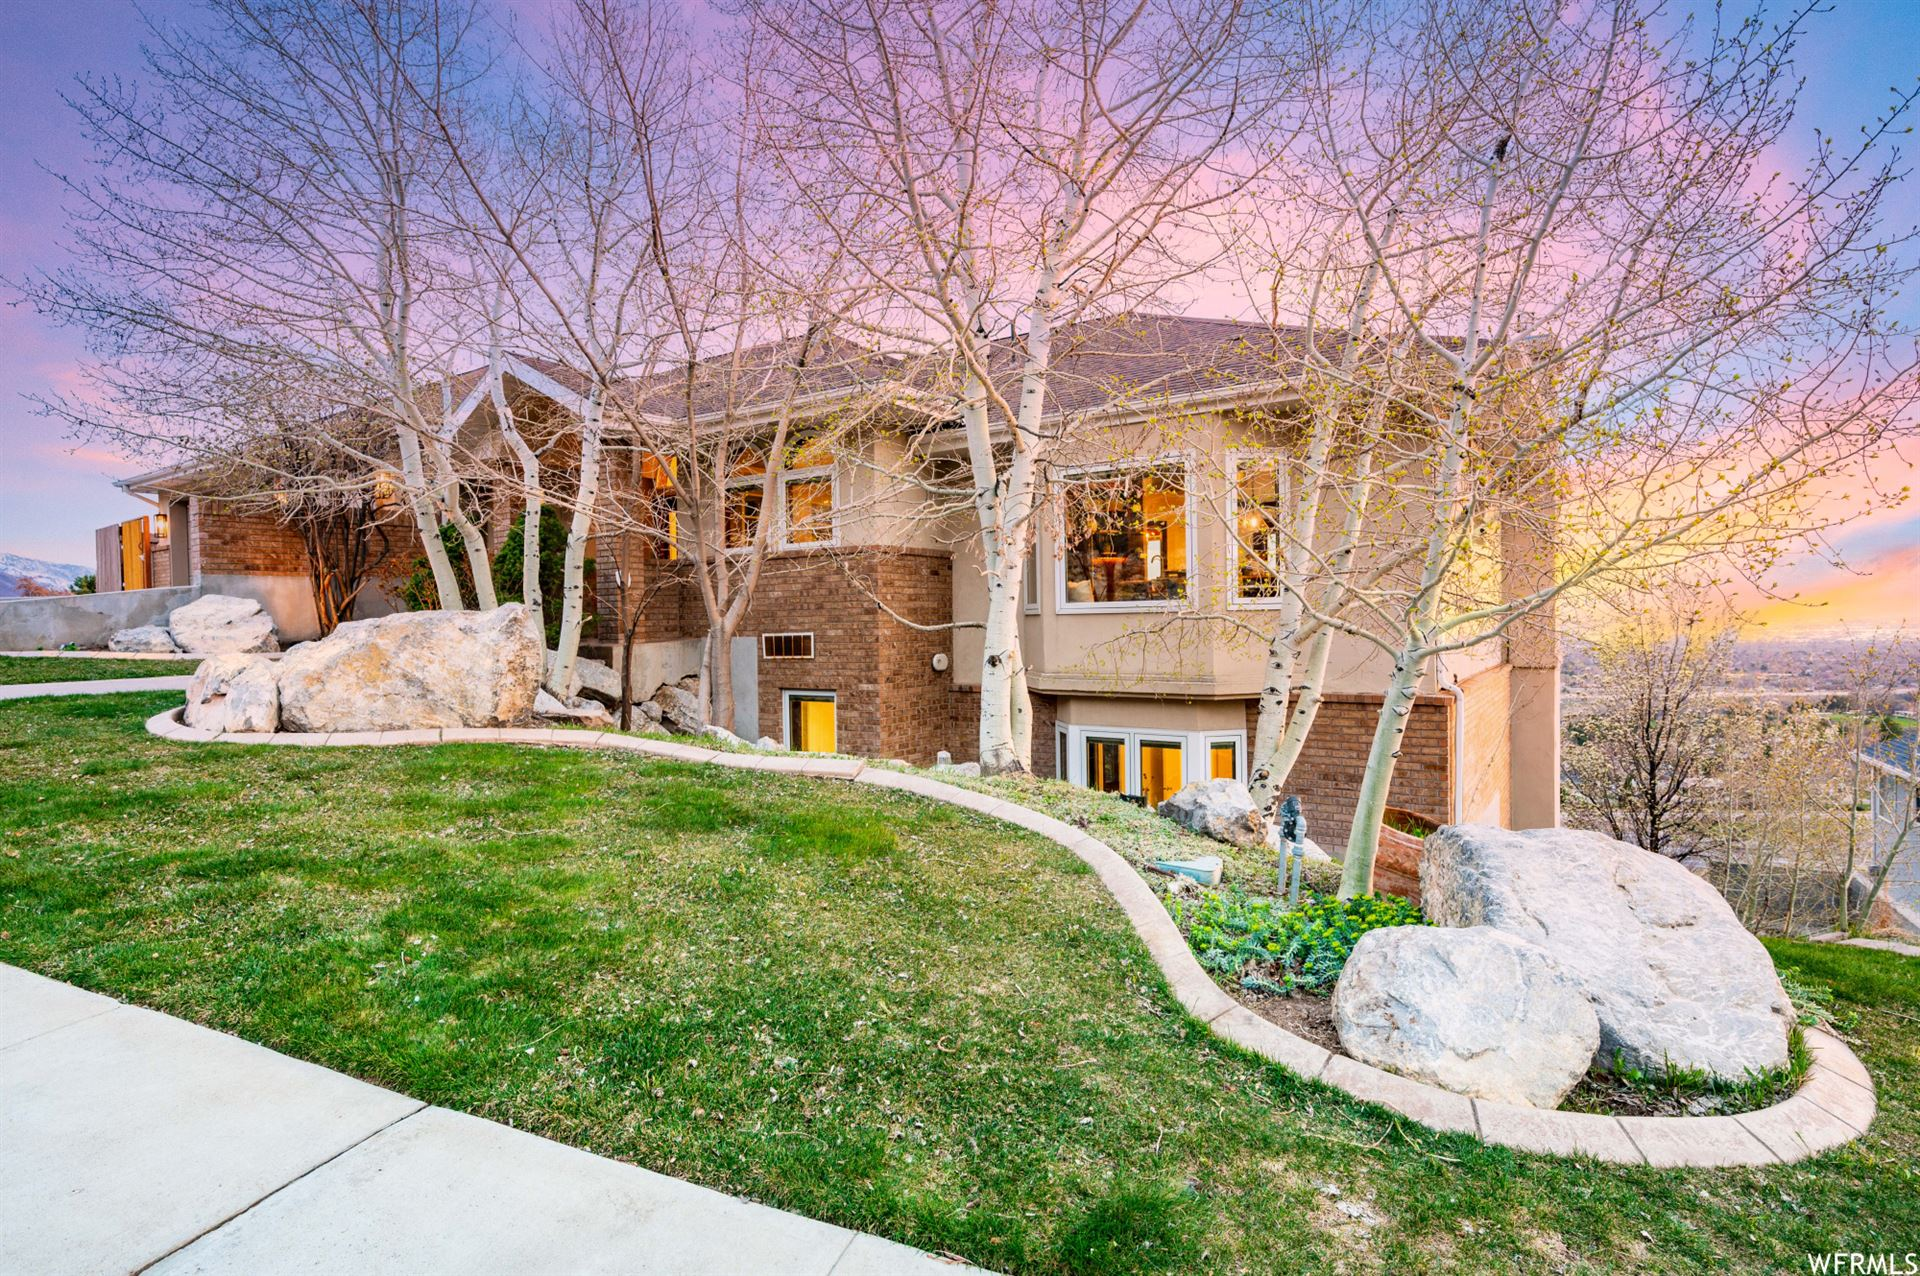 Photo of 2466 S PROMONTORY DR, Salt Lake City, UT 84109 (MLS # 1734473)